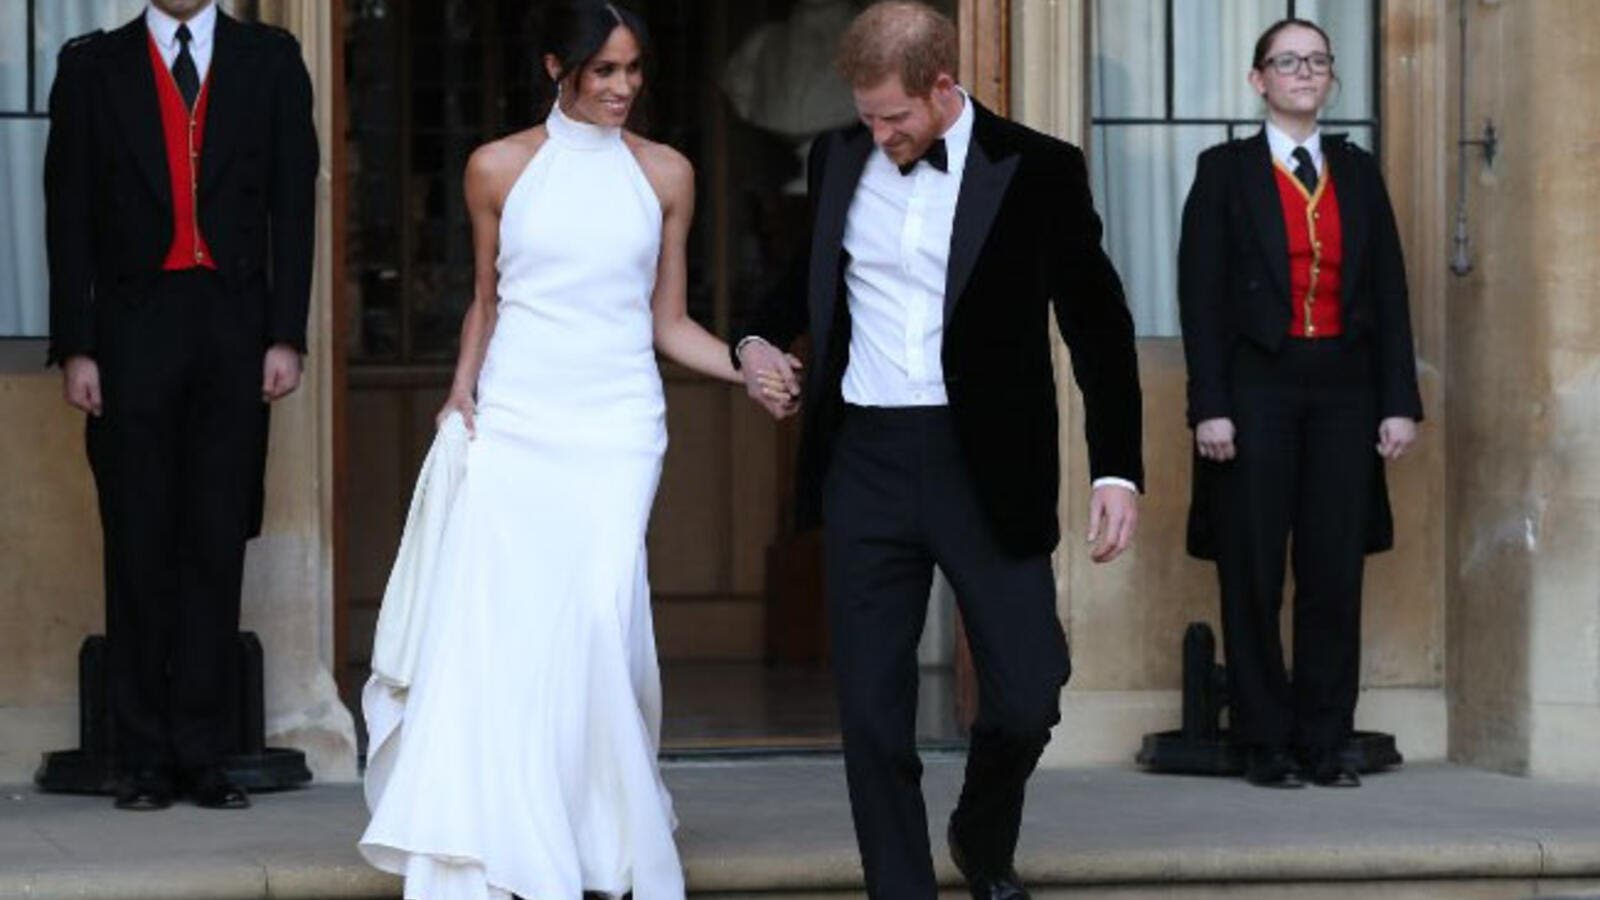 Prince Harry And Meghan Markle's Reception Ended With Fireworks (Source:STEVE PARSONS / POOL / AFP)